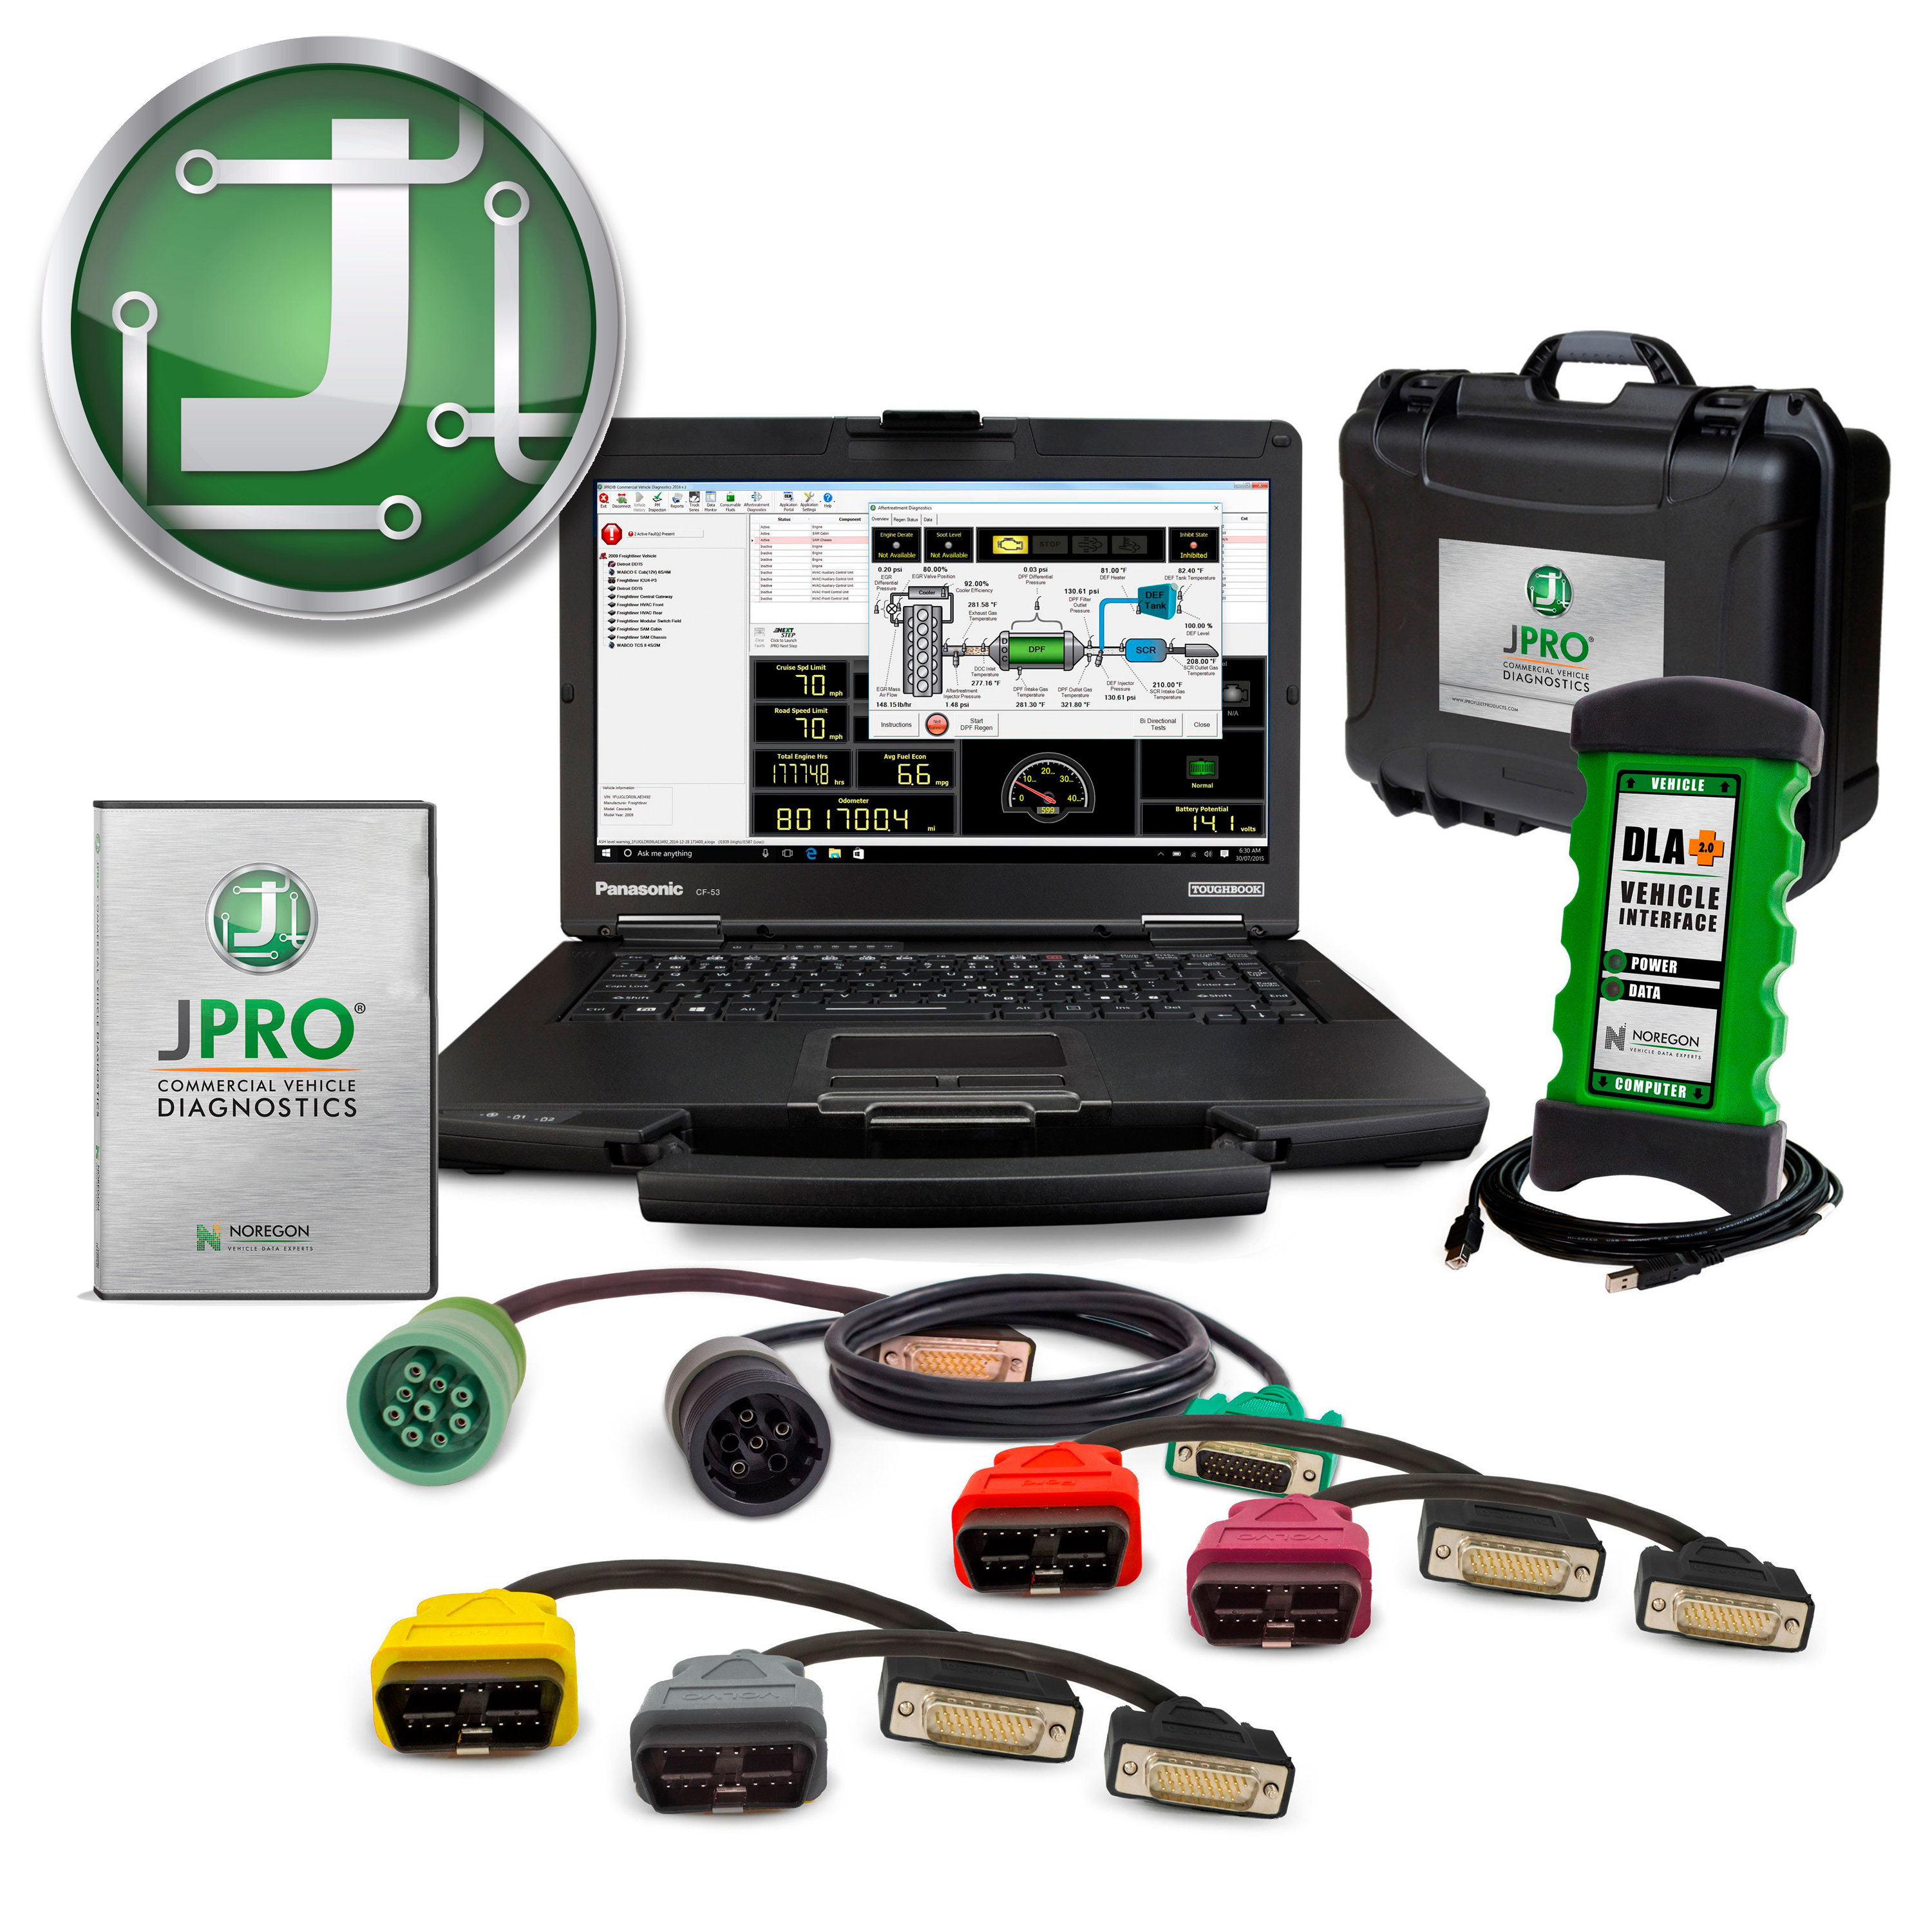 jpro heavy truck diagnostic toughbook package with repair rh dealershipcloseouts com Transmission Differential Truck Repair Truck Lettering